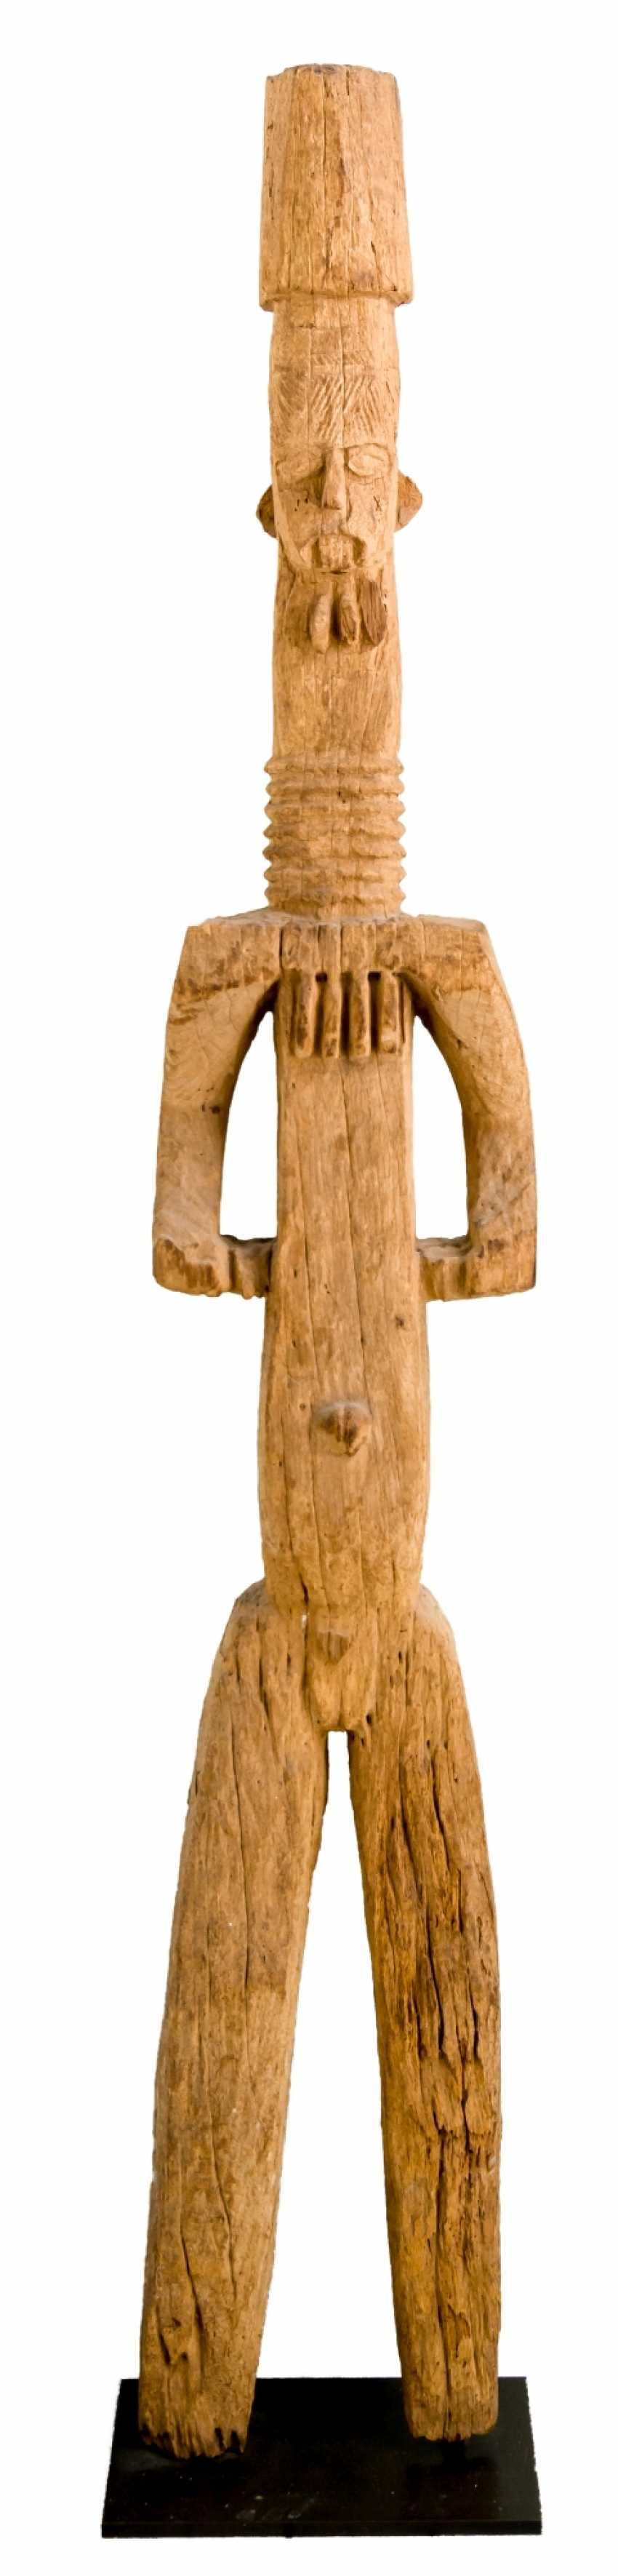 Monumental protection figure of the Ibo - photo 1